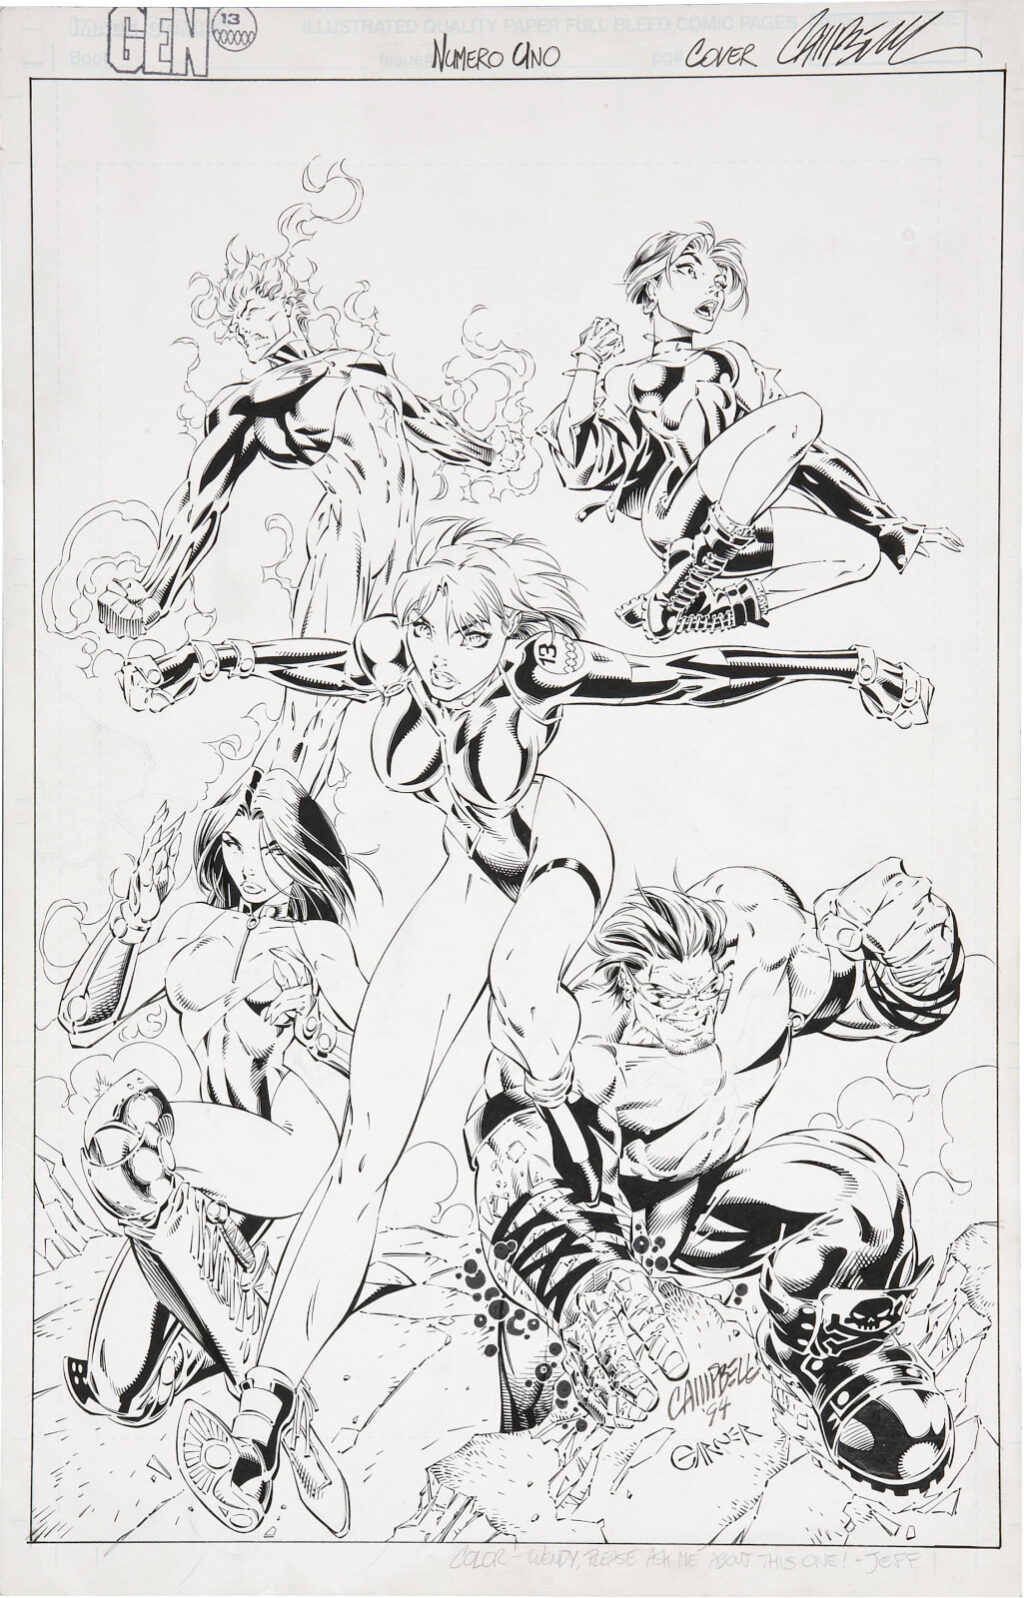 Gen 13 issue 1 cover by J. Scott Campbell and Alex Garner